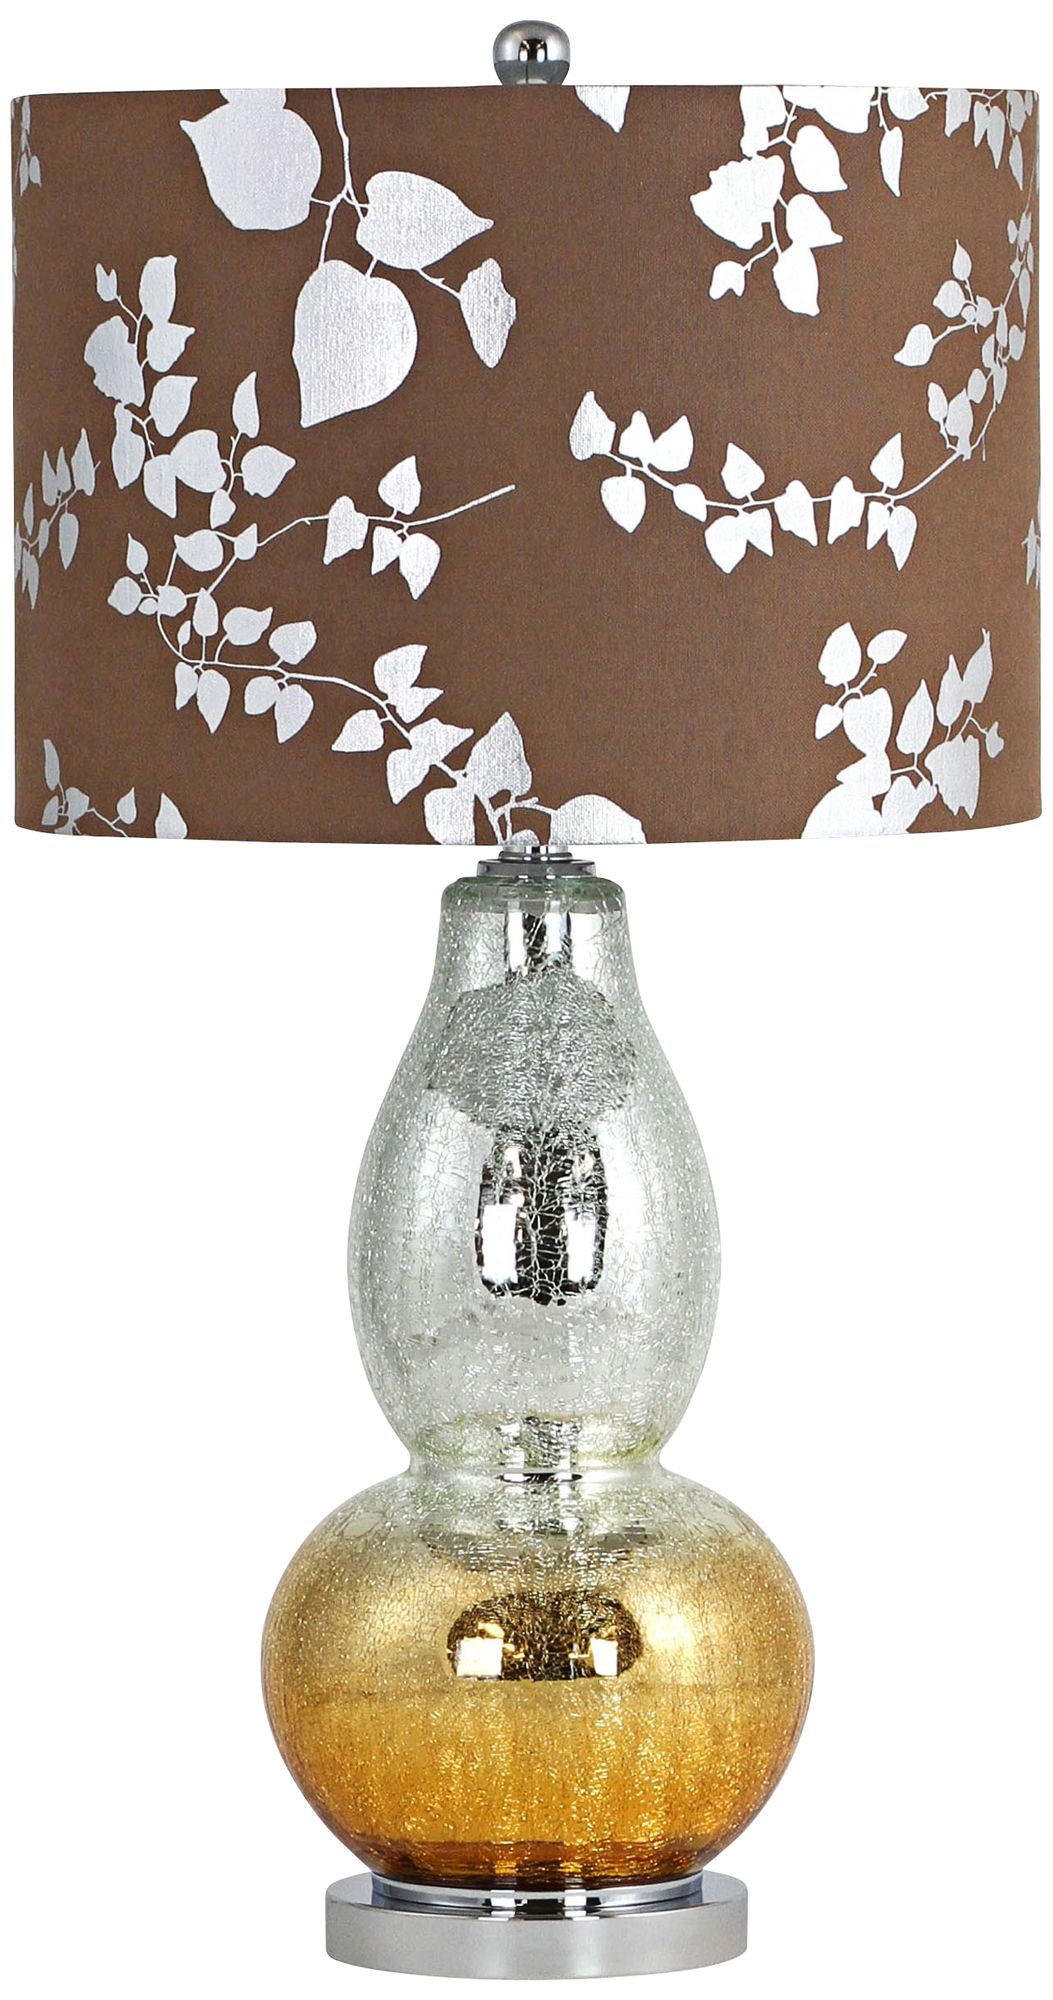 Isola Silver Copper Crackle Glass Gourd Table Lamp